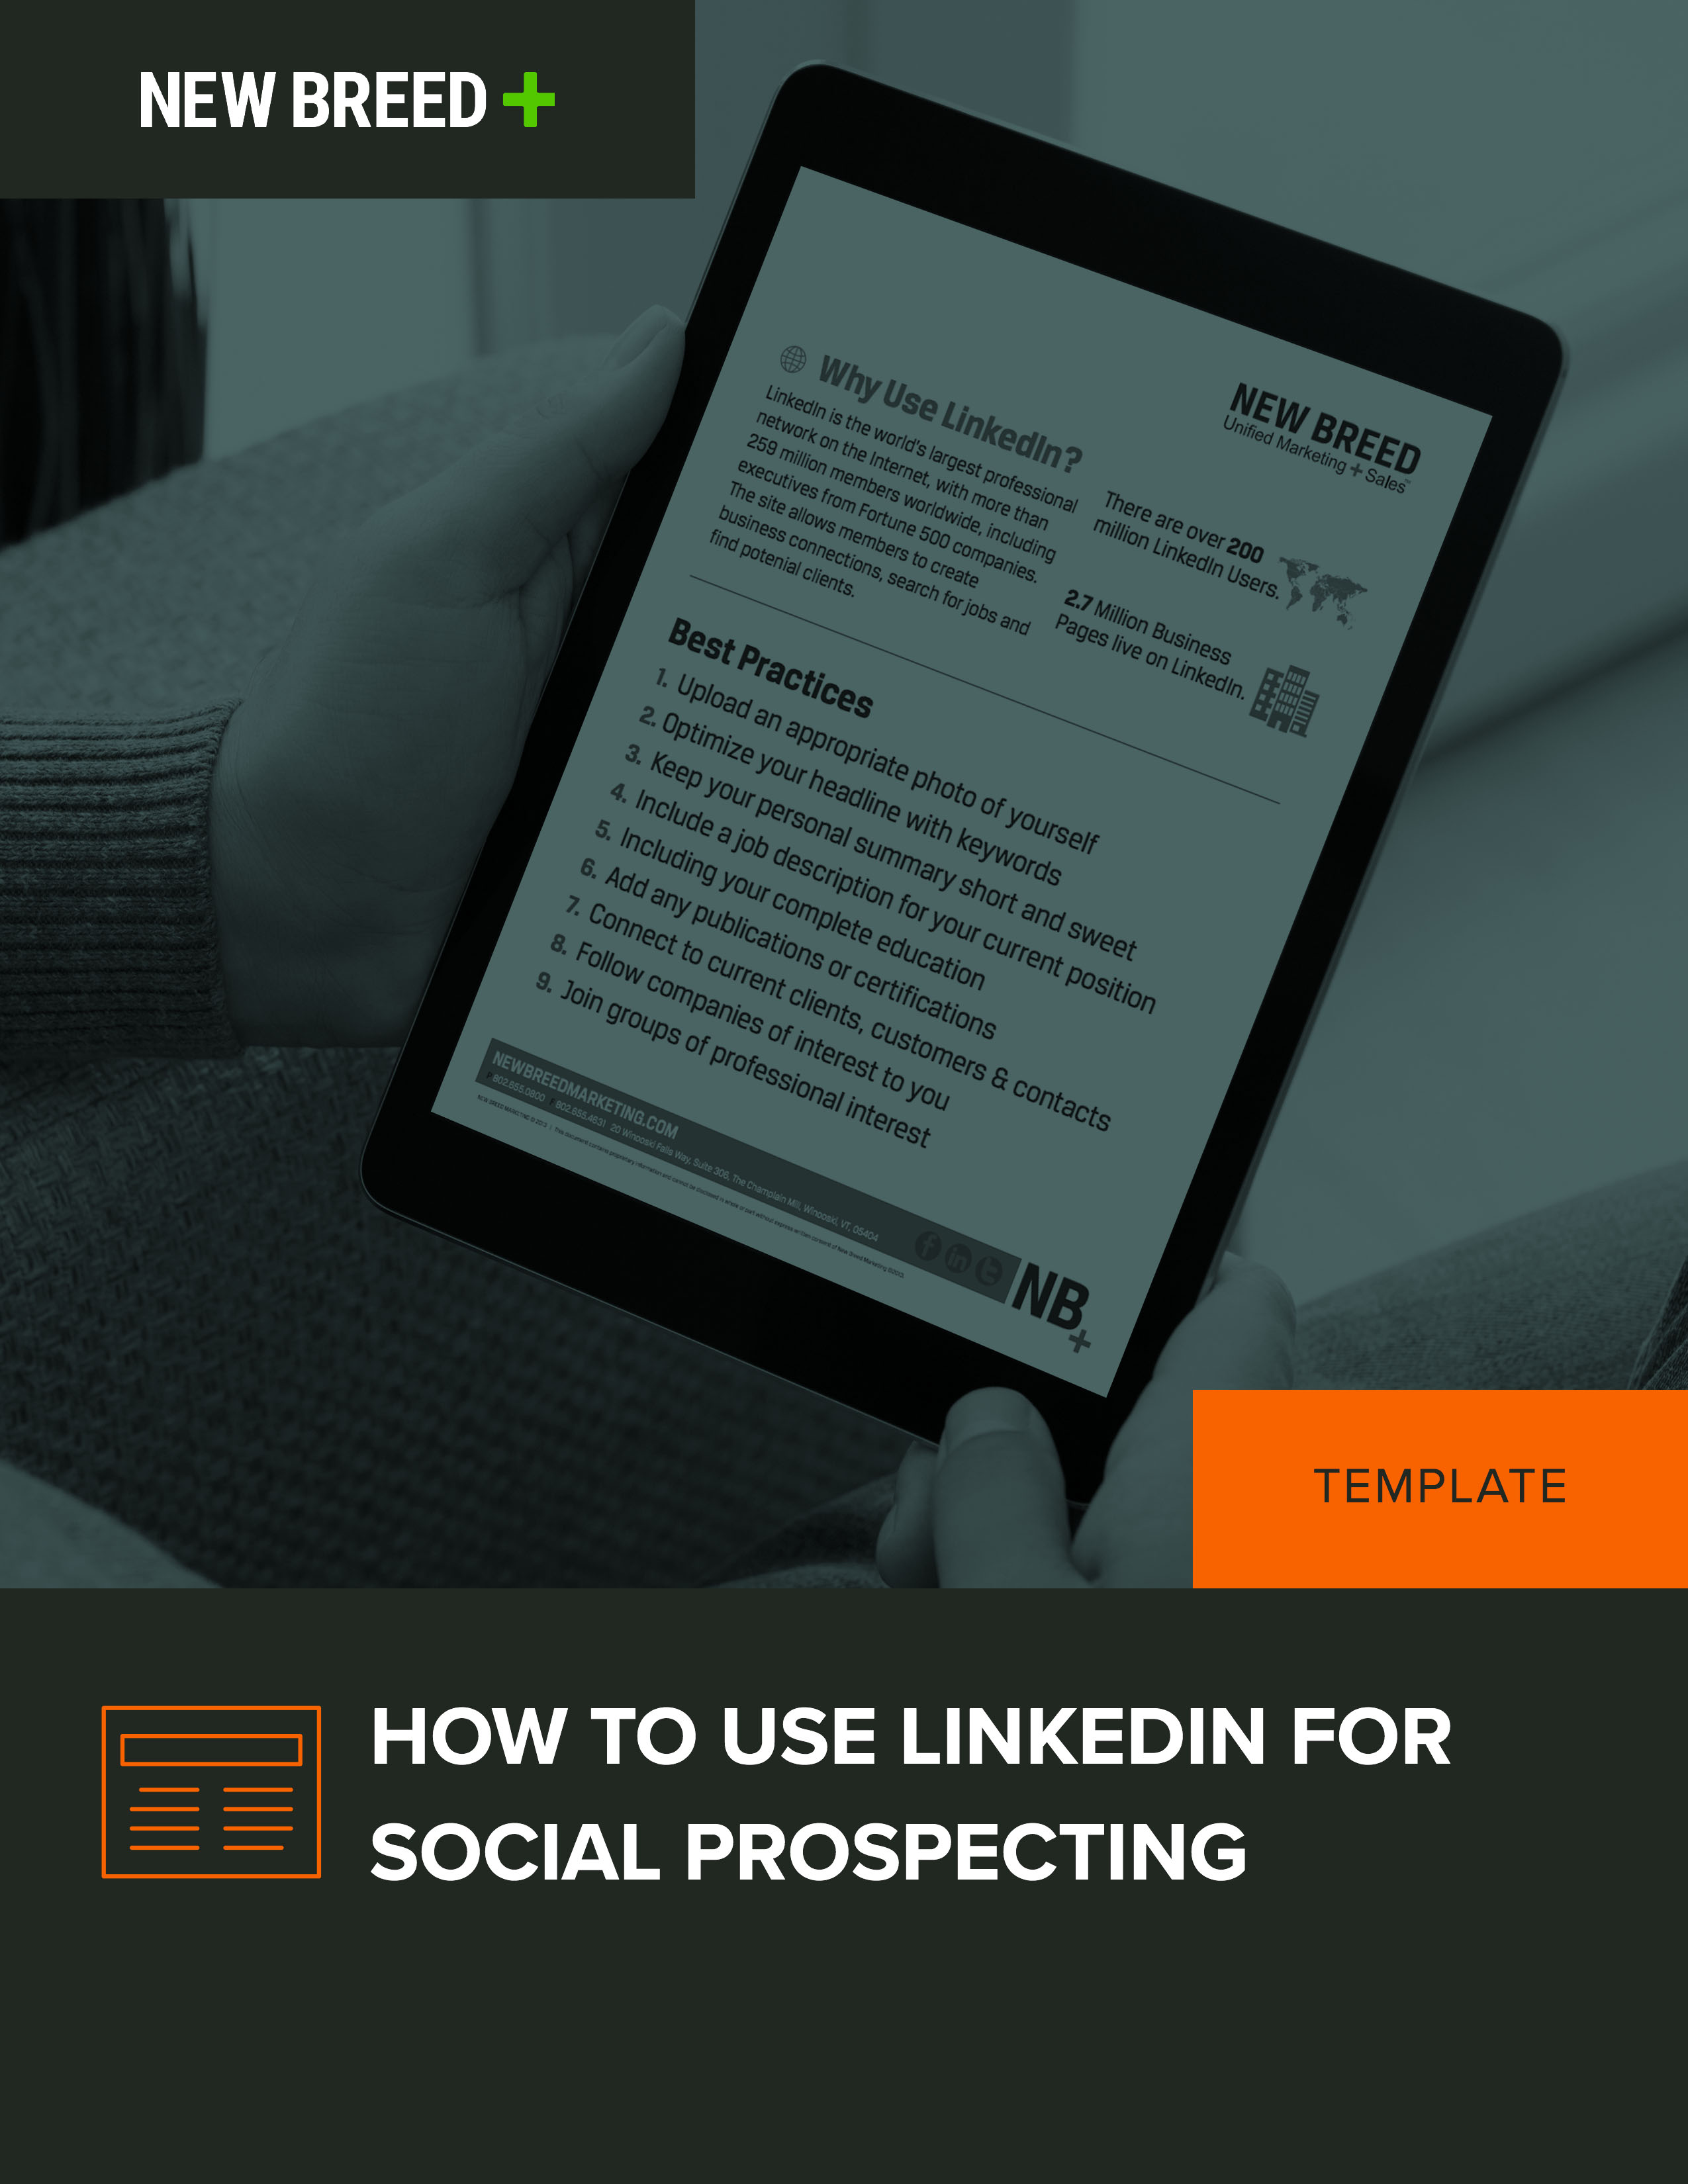 linkedin for social prospecting.jpg